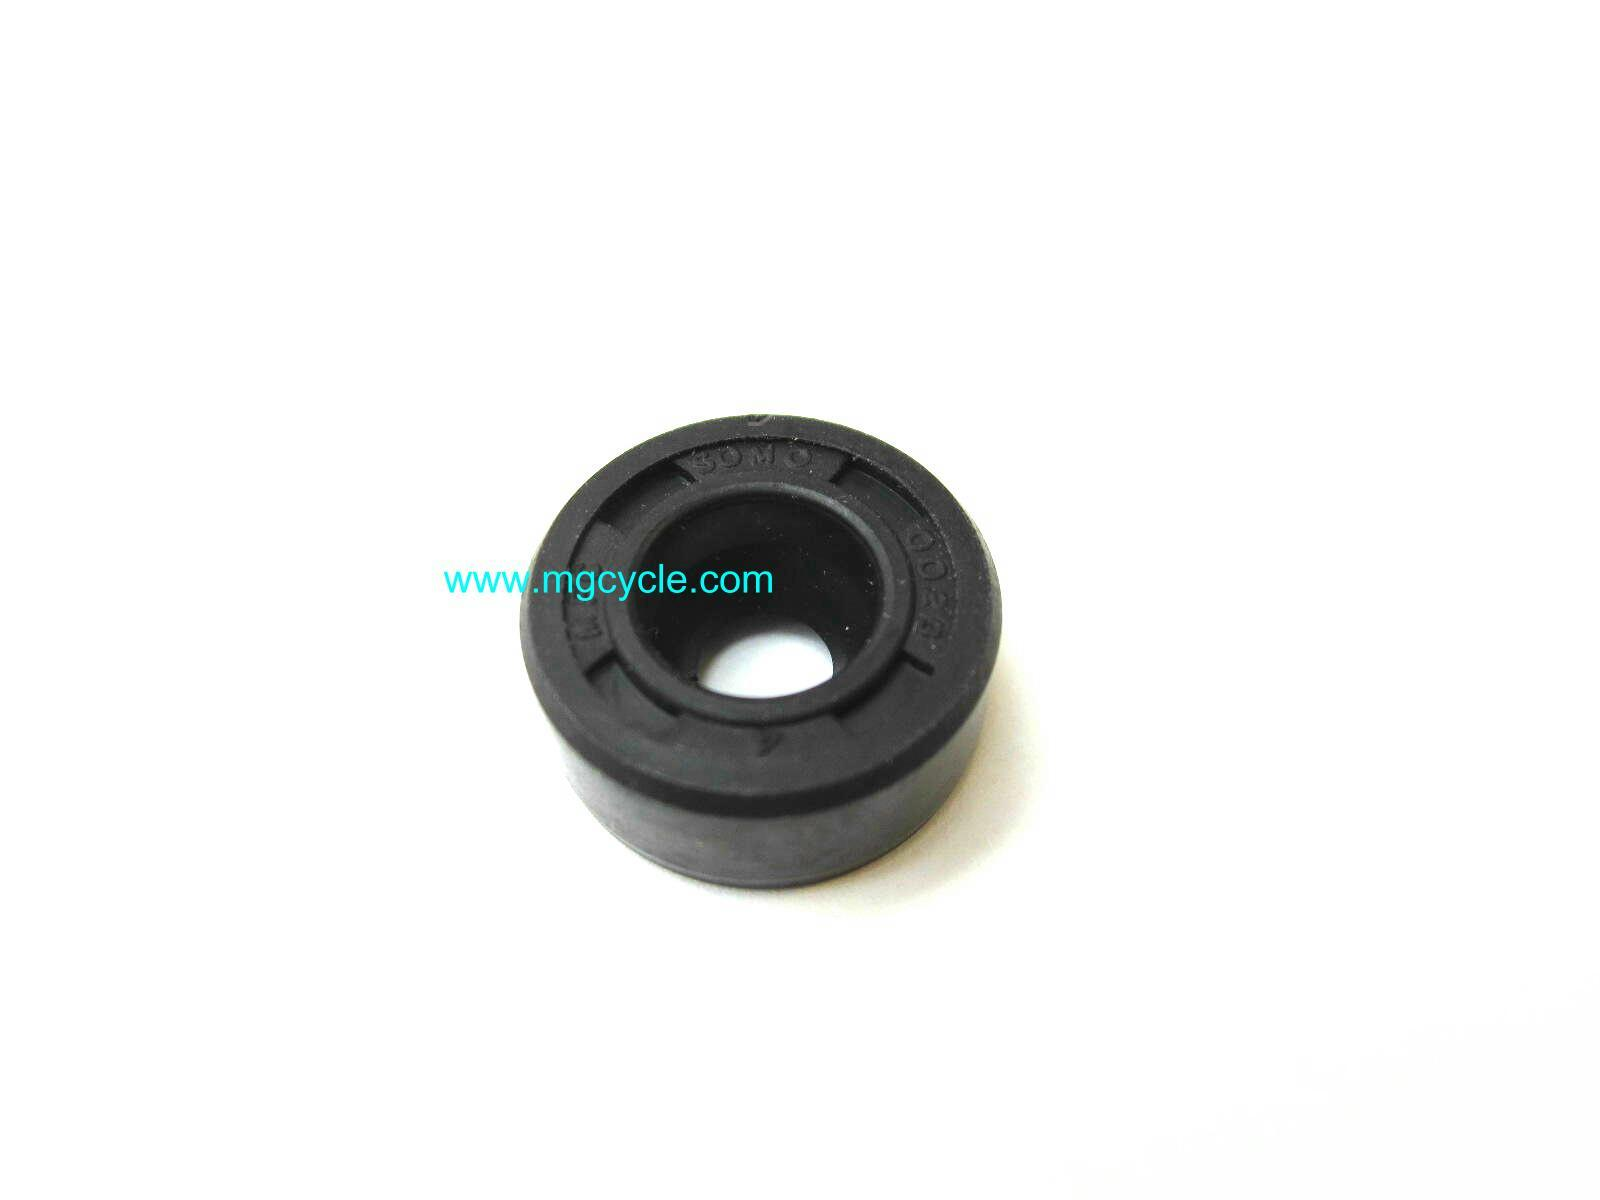 clutch push rod seal, V50 V7 Classic V7 Racer V7 Stone etc